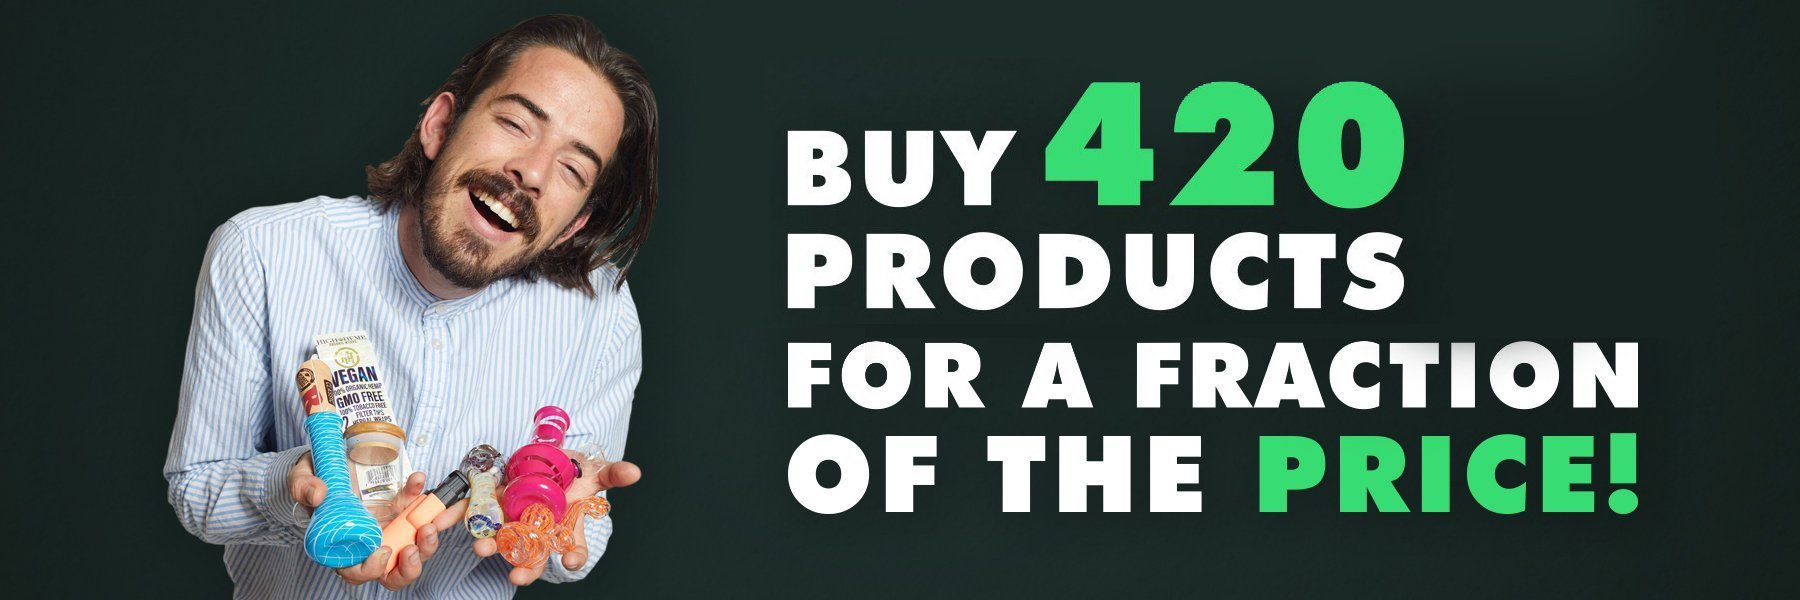 Buy 420 products for a fraction of the price